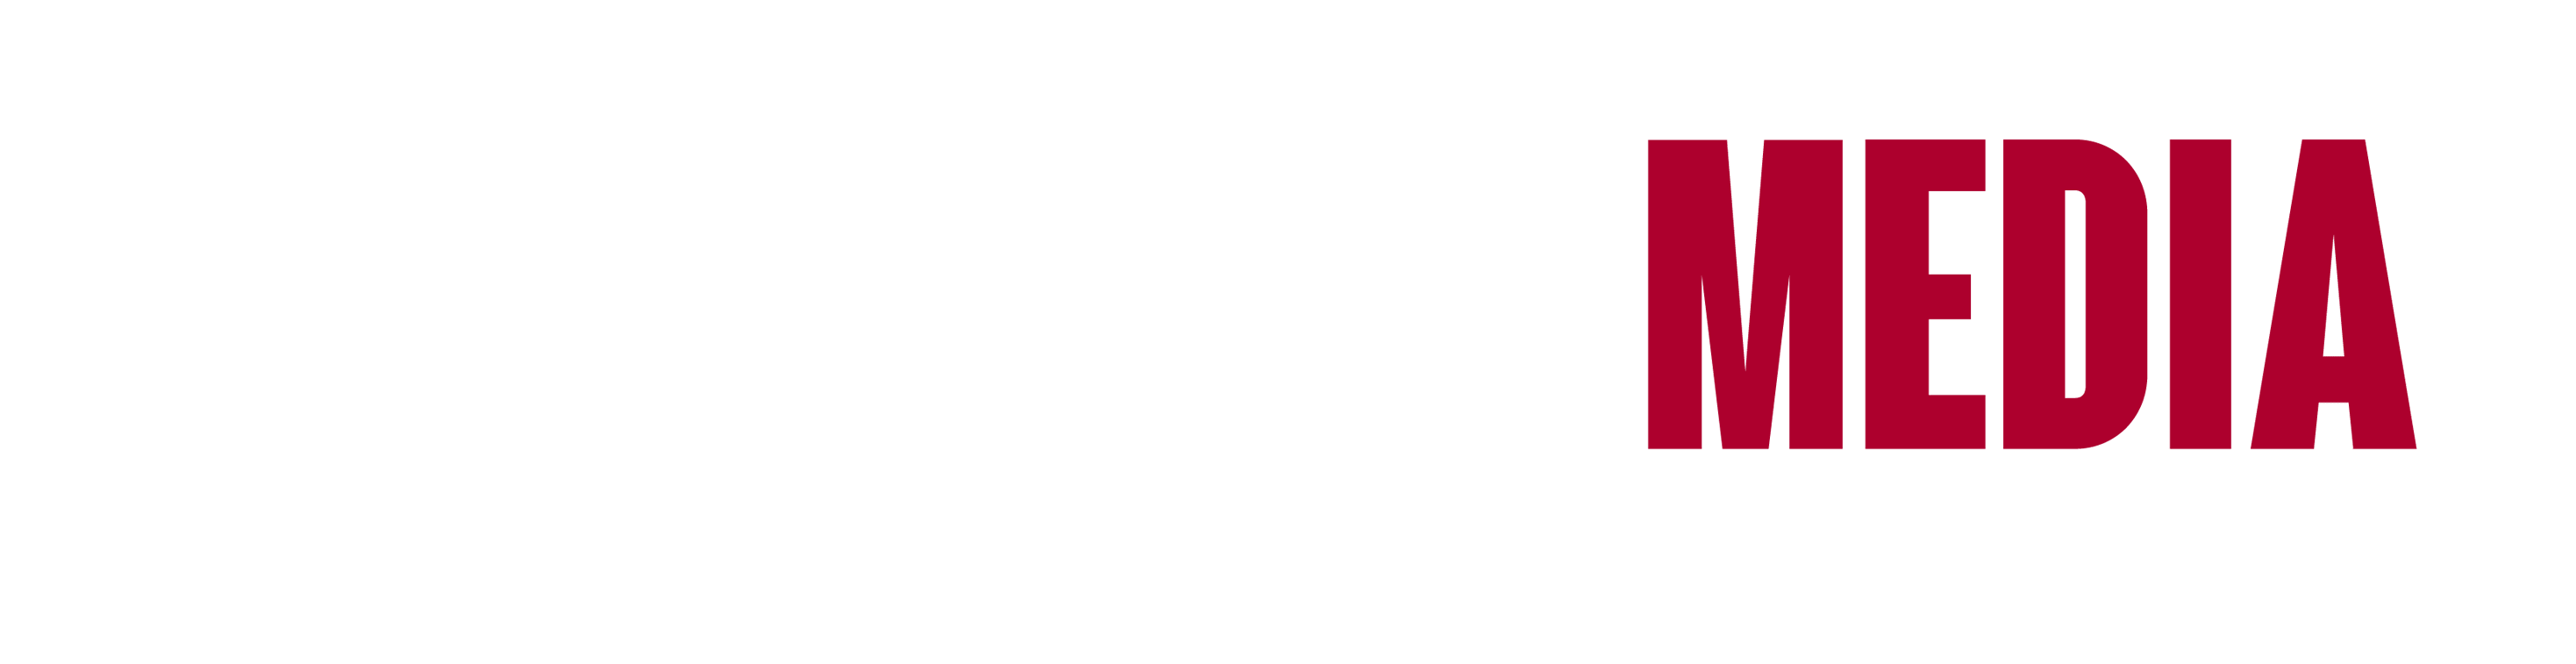 logo revolution media alb